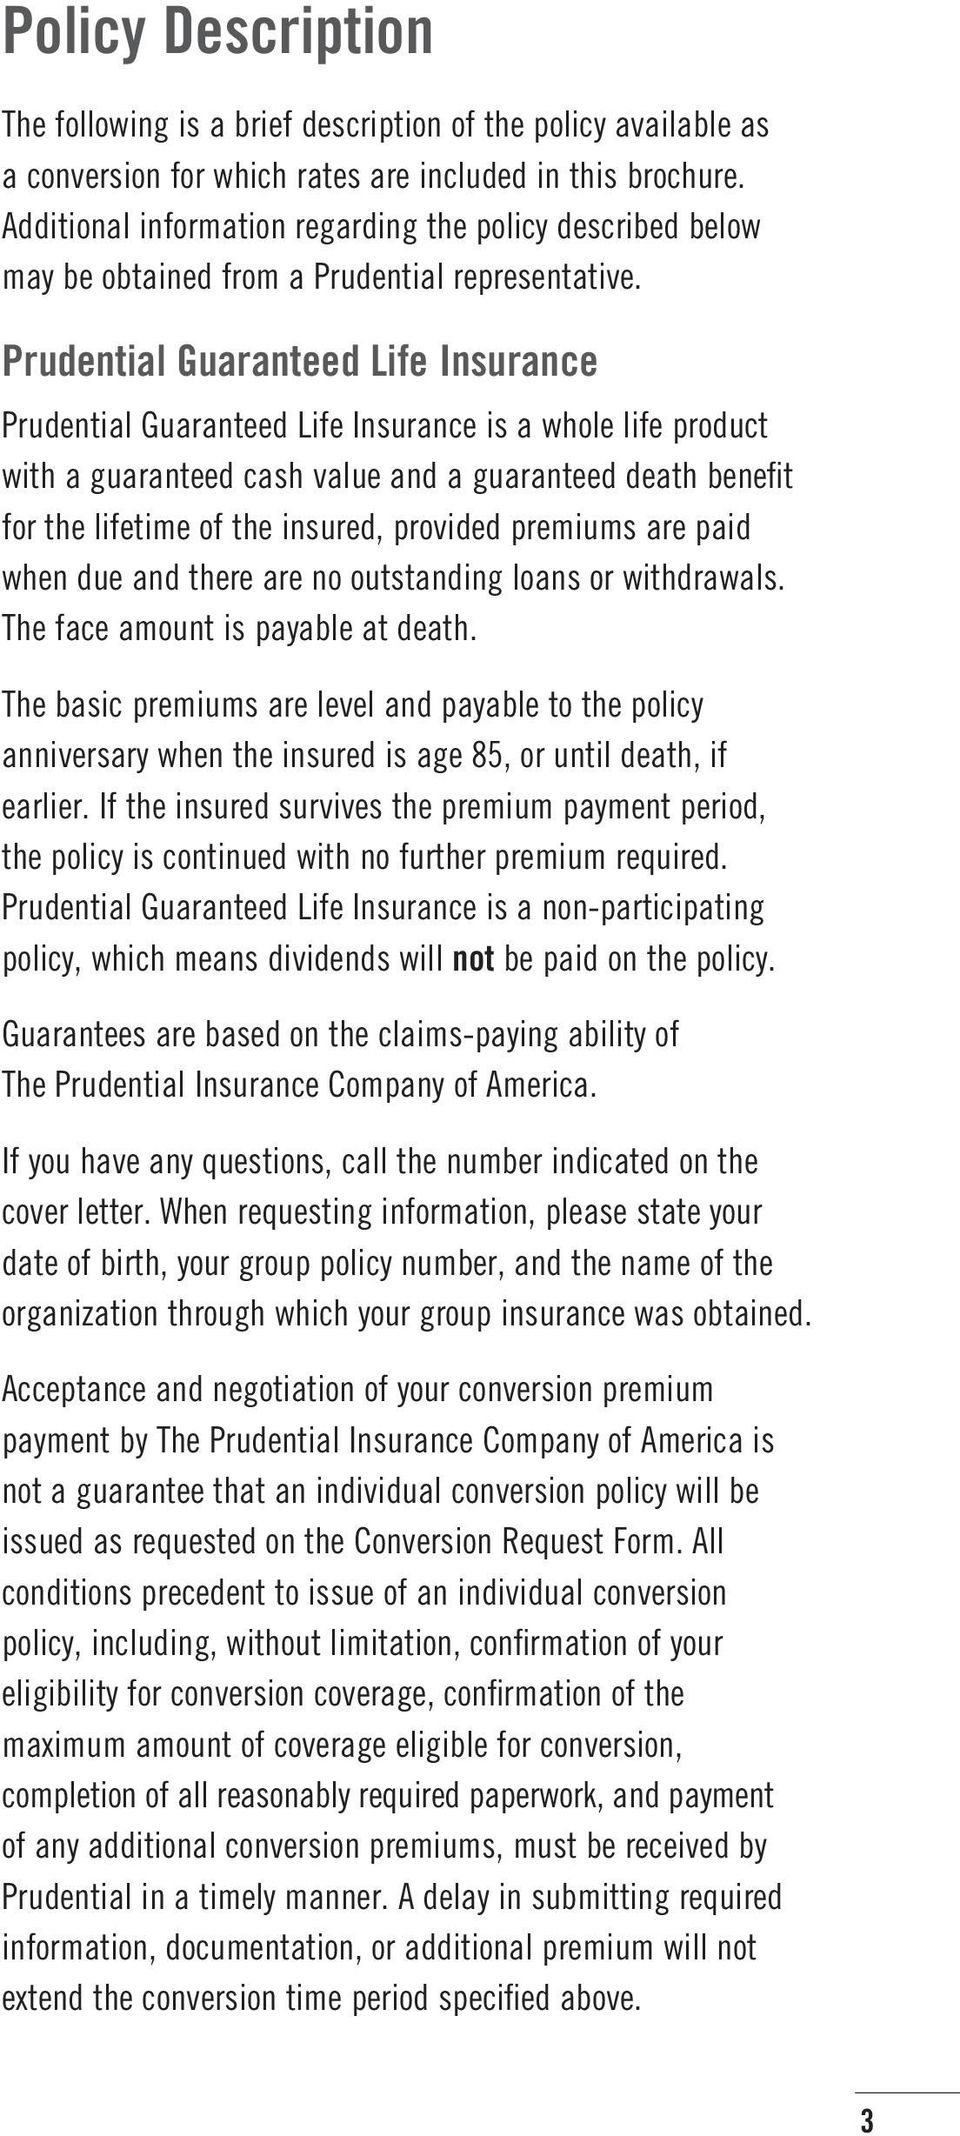 Prudential Guaranteed Life Insurance Prudential Guaranteed Life Insurance is a whole life product with a guaranteed cash value and a guaranteed death benefit for the lifetime of the insured, provided